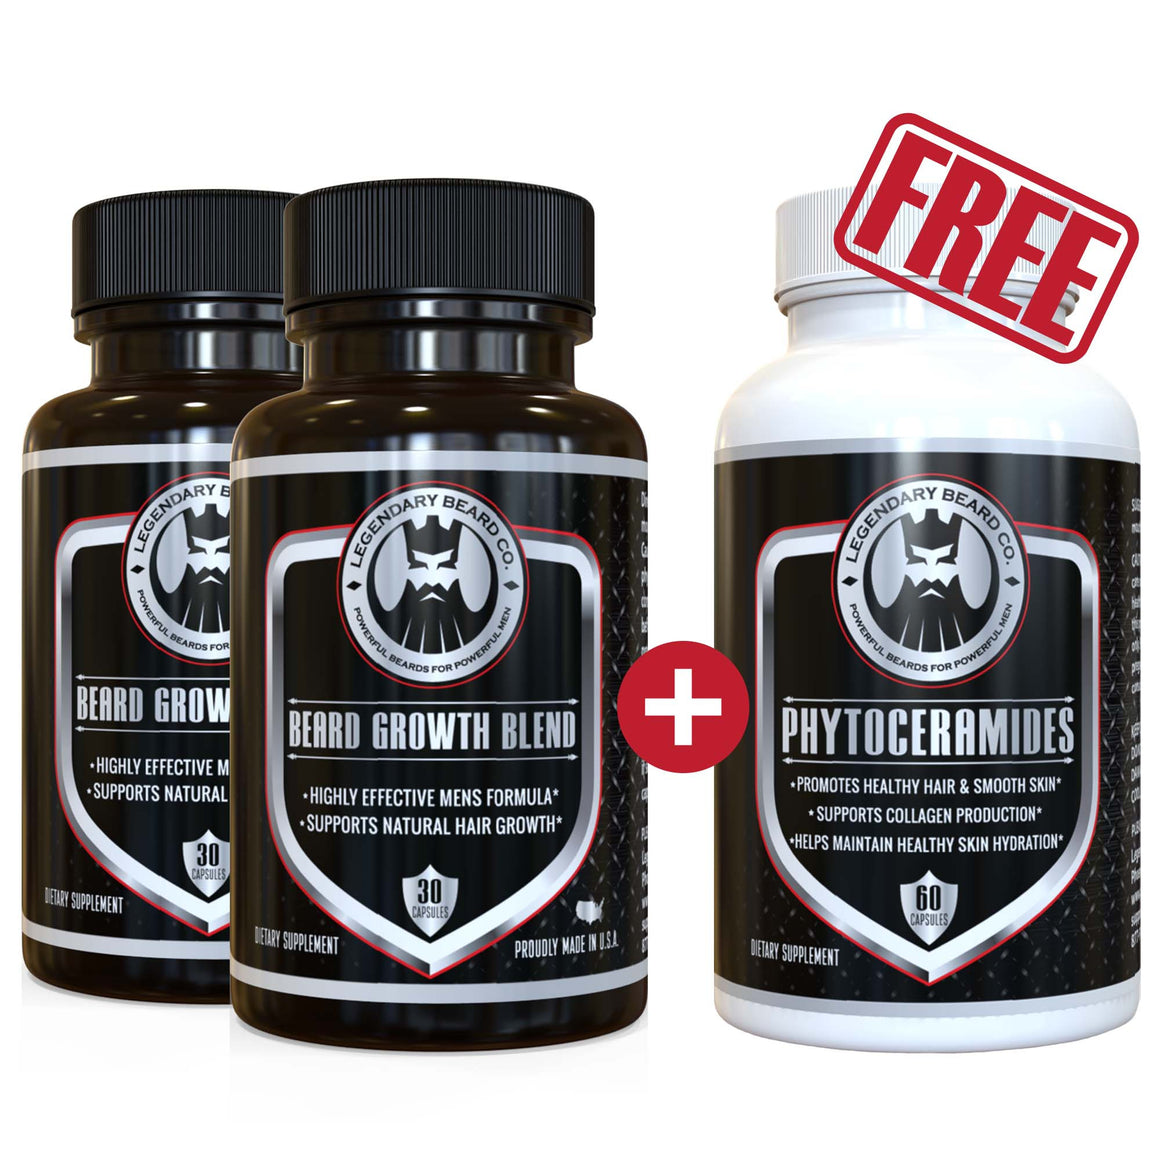 Legendary Beard Growth Blend / Phytocermides Combo Pack Buy 2 + Get 1 Free